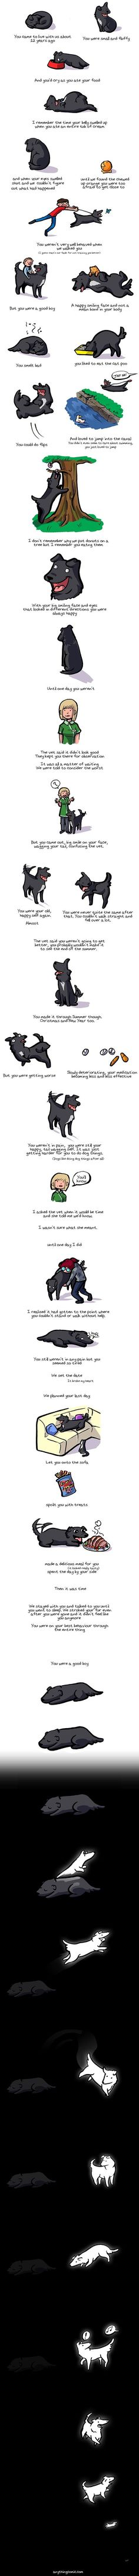 Heartwarming Illustration Of A Dog's Life Will Make You Want To Hug Your Pup Forever